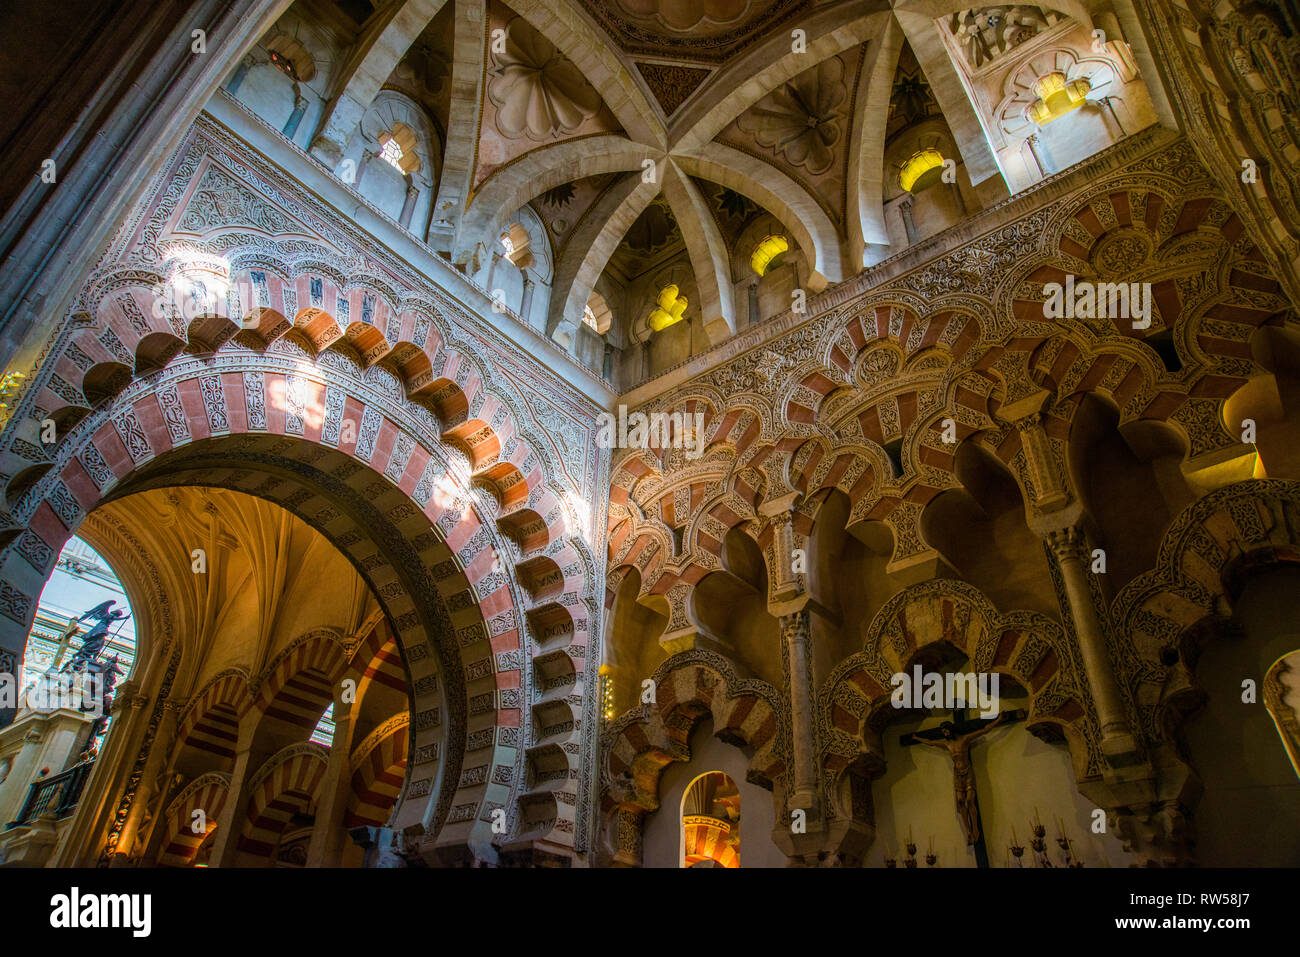 Mosque Cathedral, indoor view. Cordoba, Spain. - Stock Image